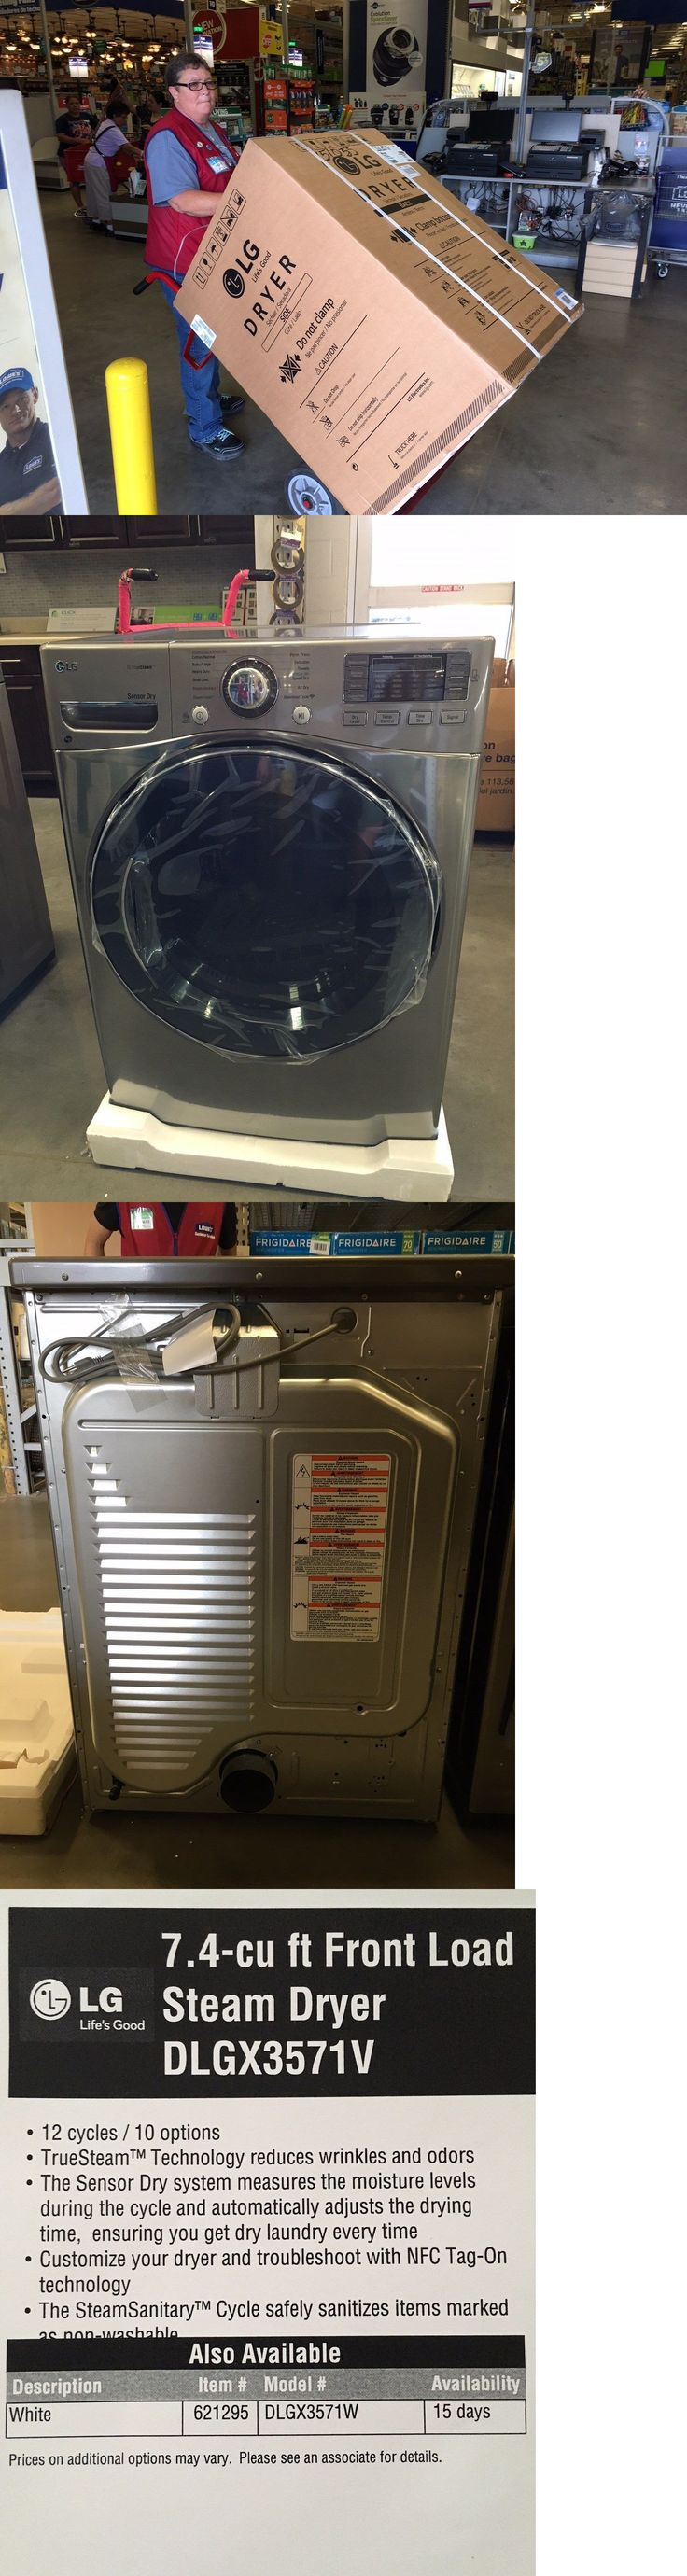 Washer and Dryer Sets 71257: Brand New Lg Dryer Front Load Gas (Local Pickup Delivery Only) -> BUY IT NOW ONLY: $700 on eBay!